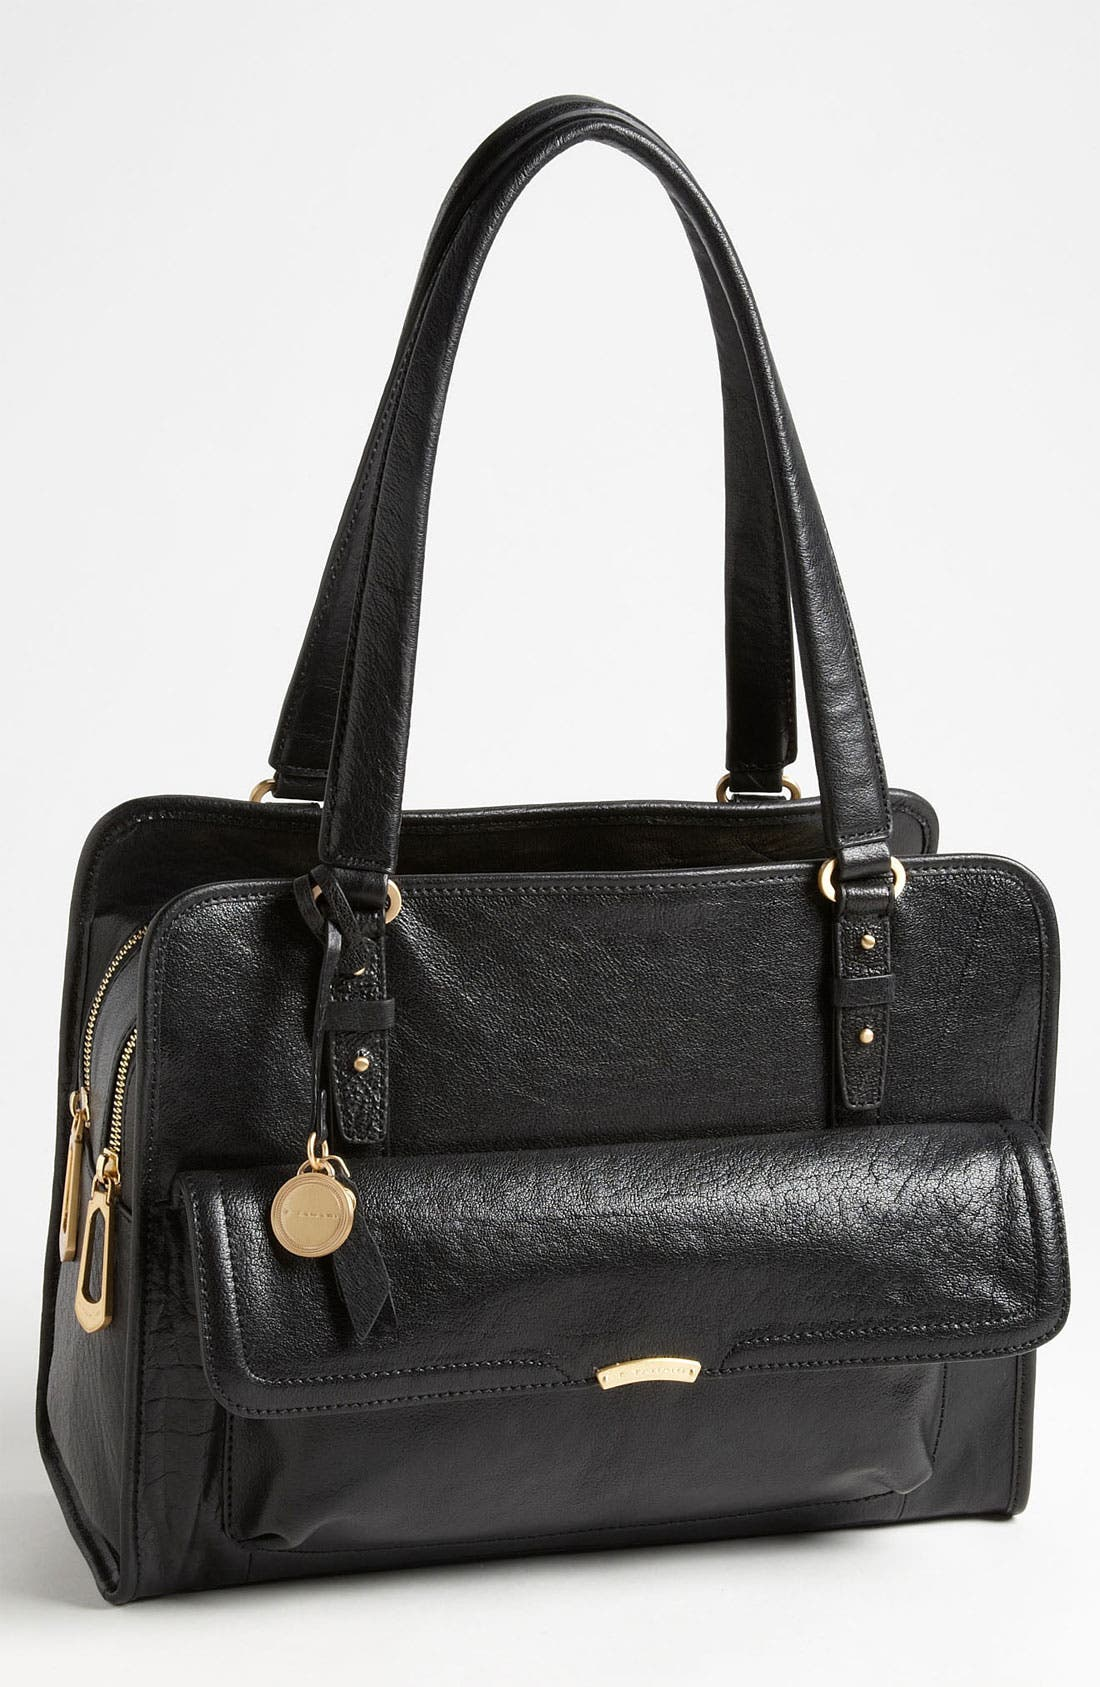 Alternate Image 1 Selected - T Tahari 'Joy' Double Compartment Shoulder Bag